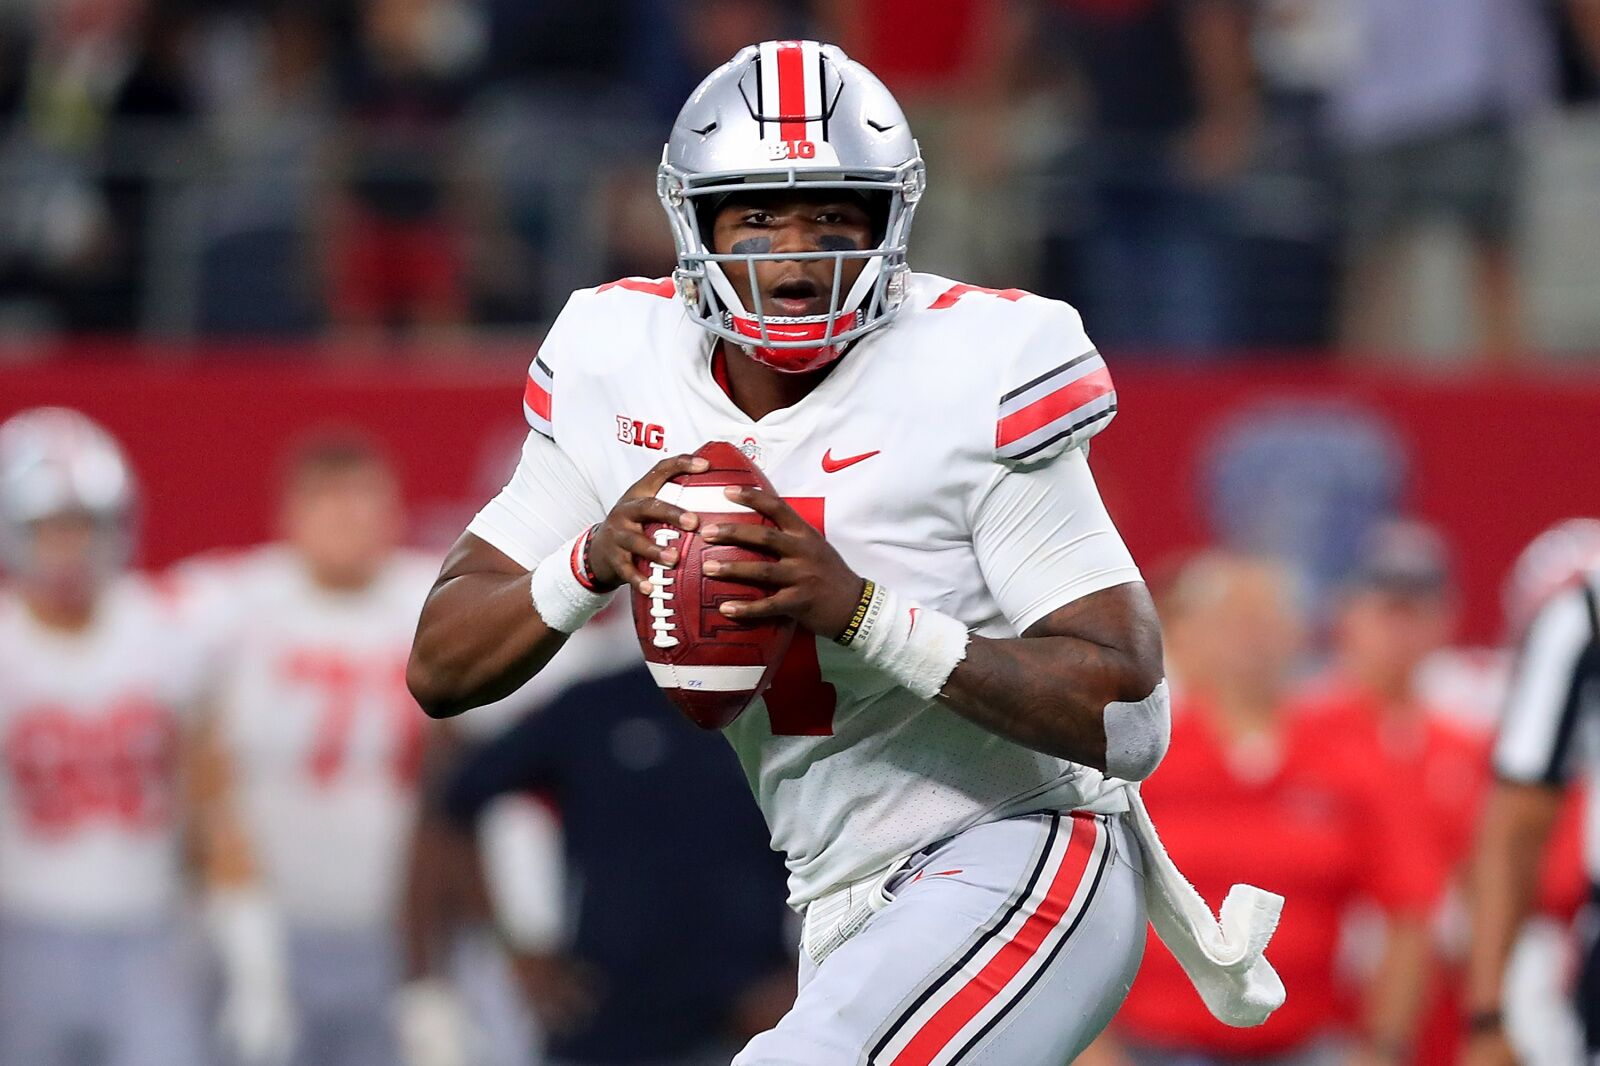 Ohio State Football: Dwayne Haskins not a u2018Locku2019 to be 2nd QB drafted